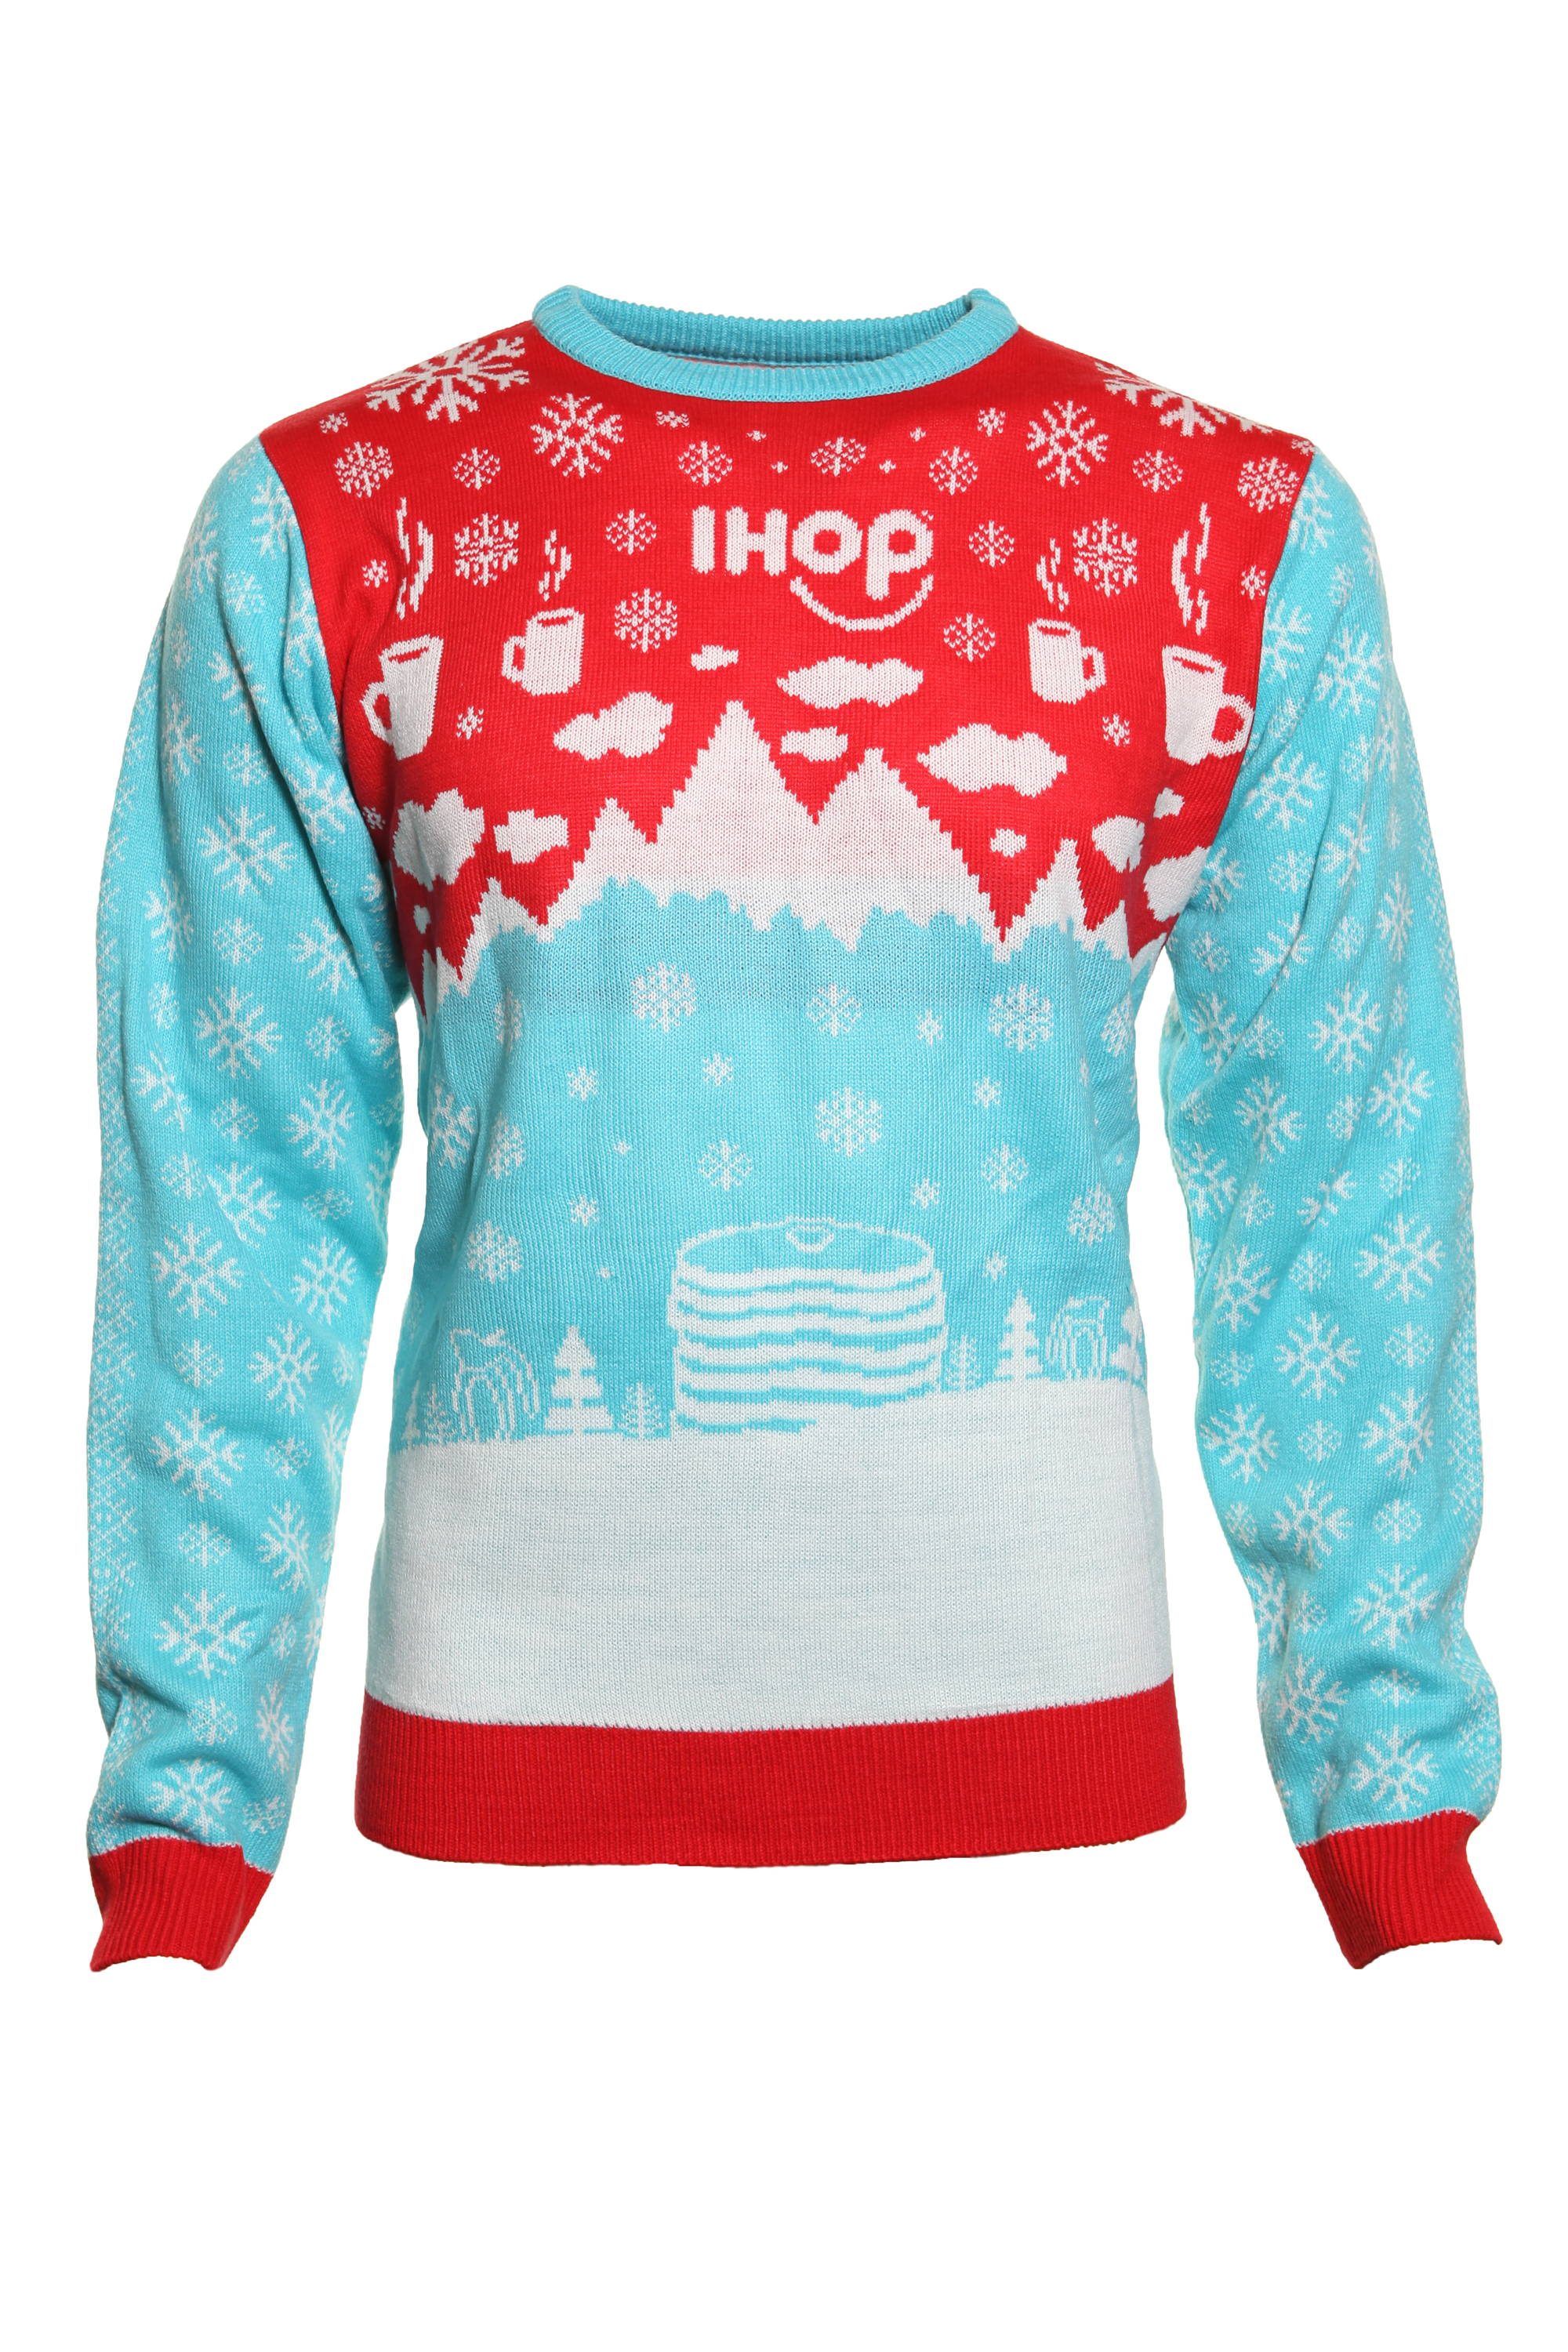 iHop Custom Christmas Sweaters